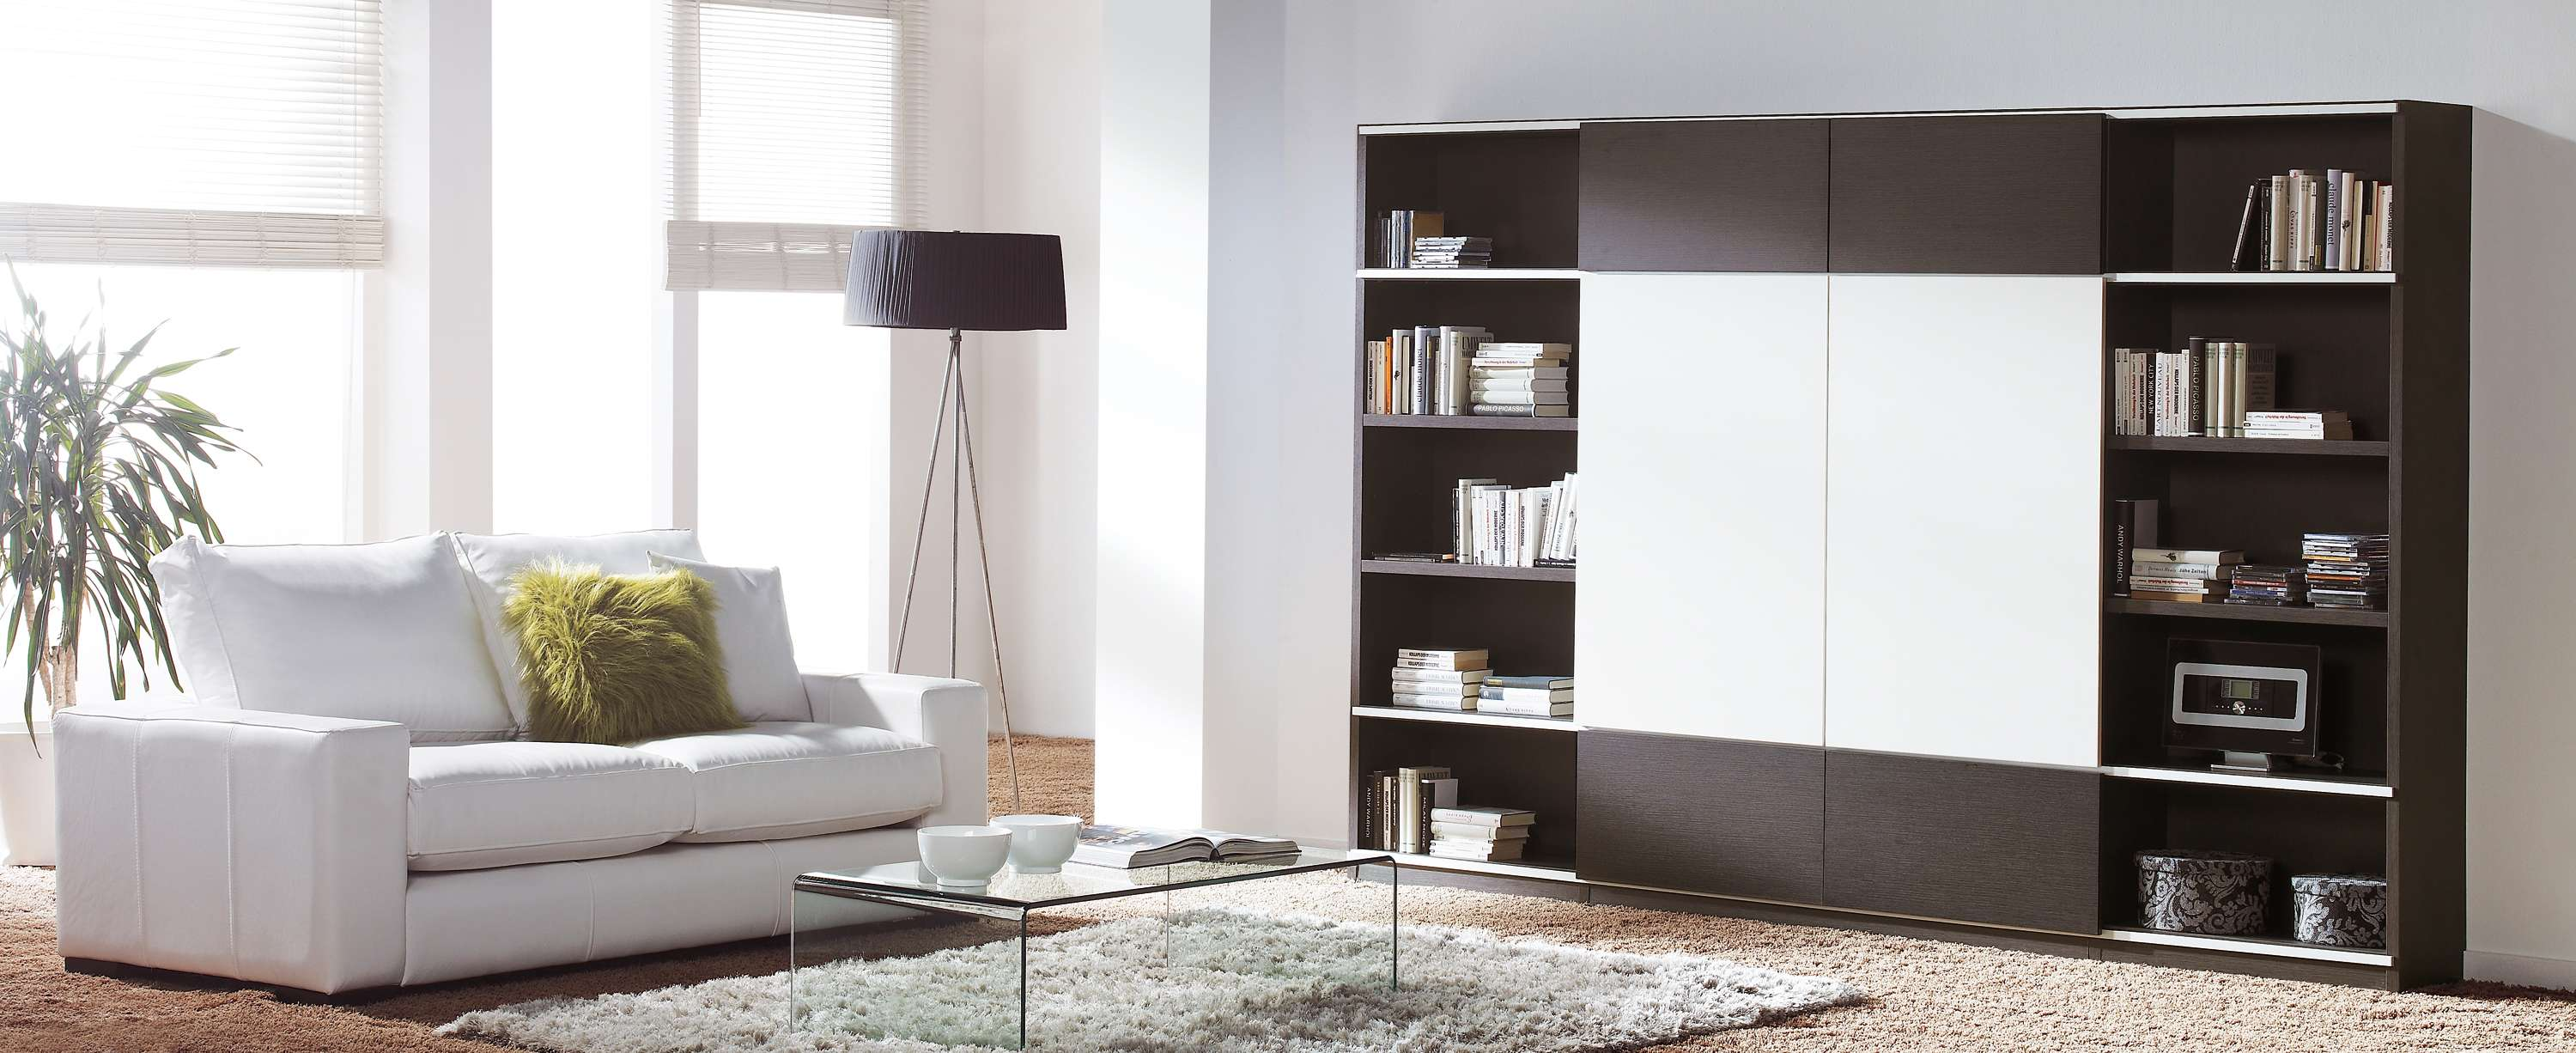 Stunning Modular Shelving Units Applied Living Room Space House